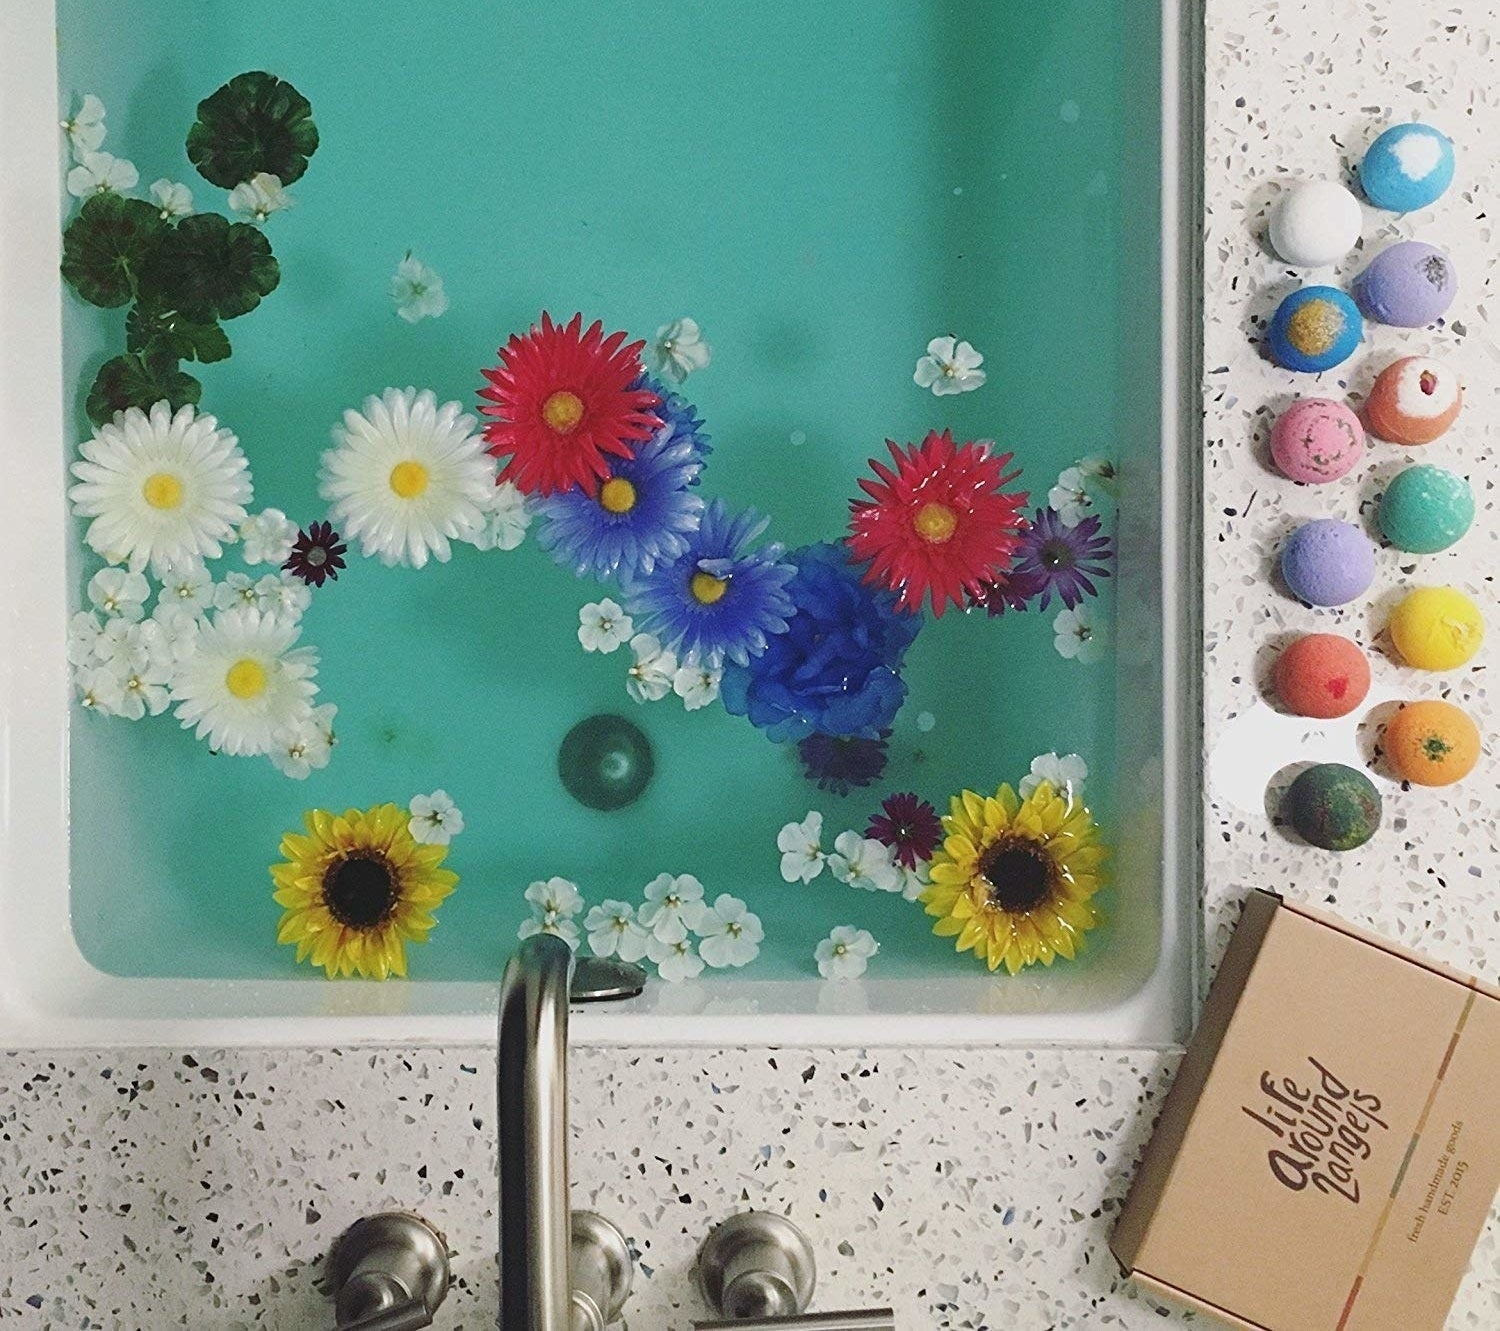 bath tub with flowers in it and bath bombs on the side